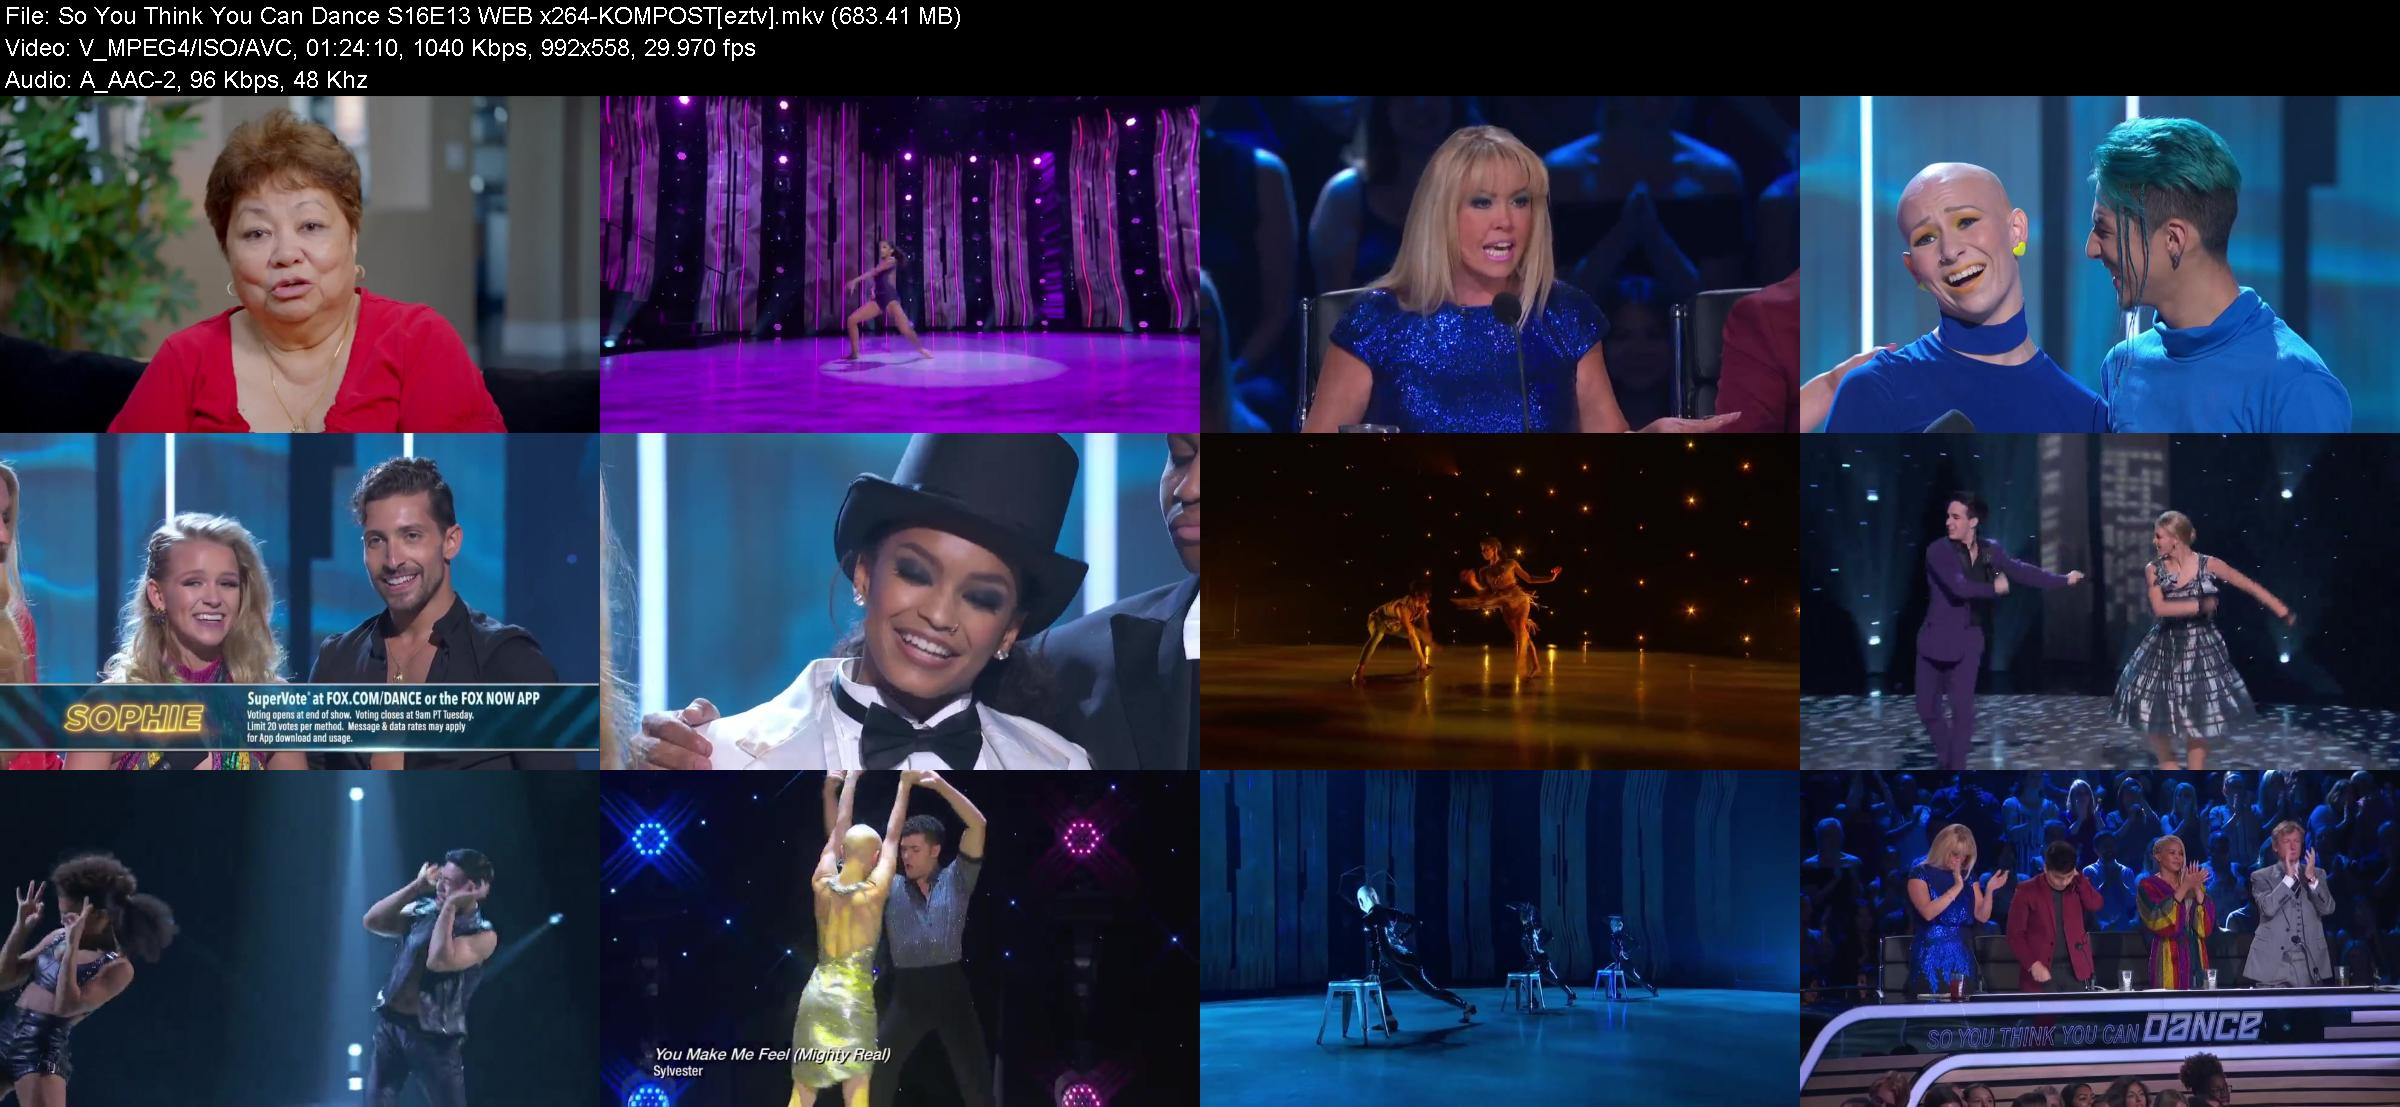 120422519_so-you-think-you-can-dance-s16e13-web-x264-kompost.jpg